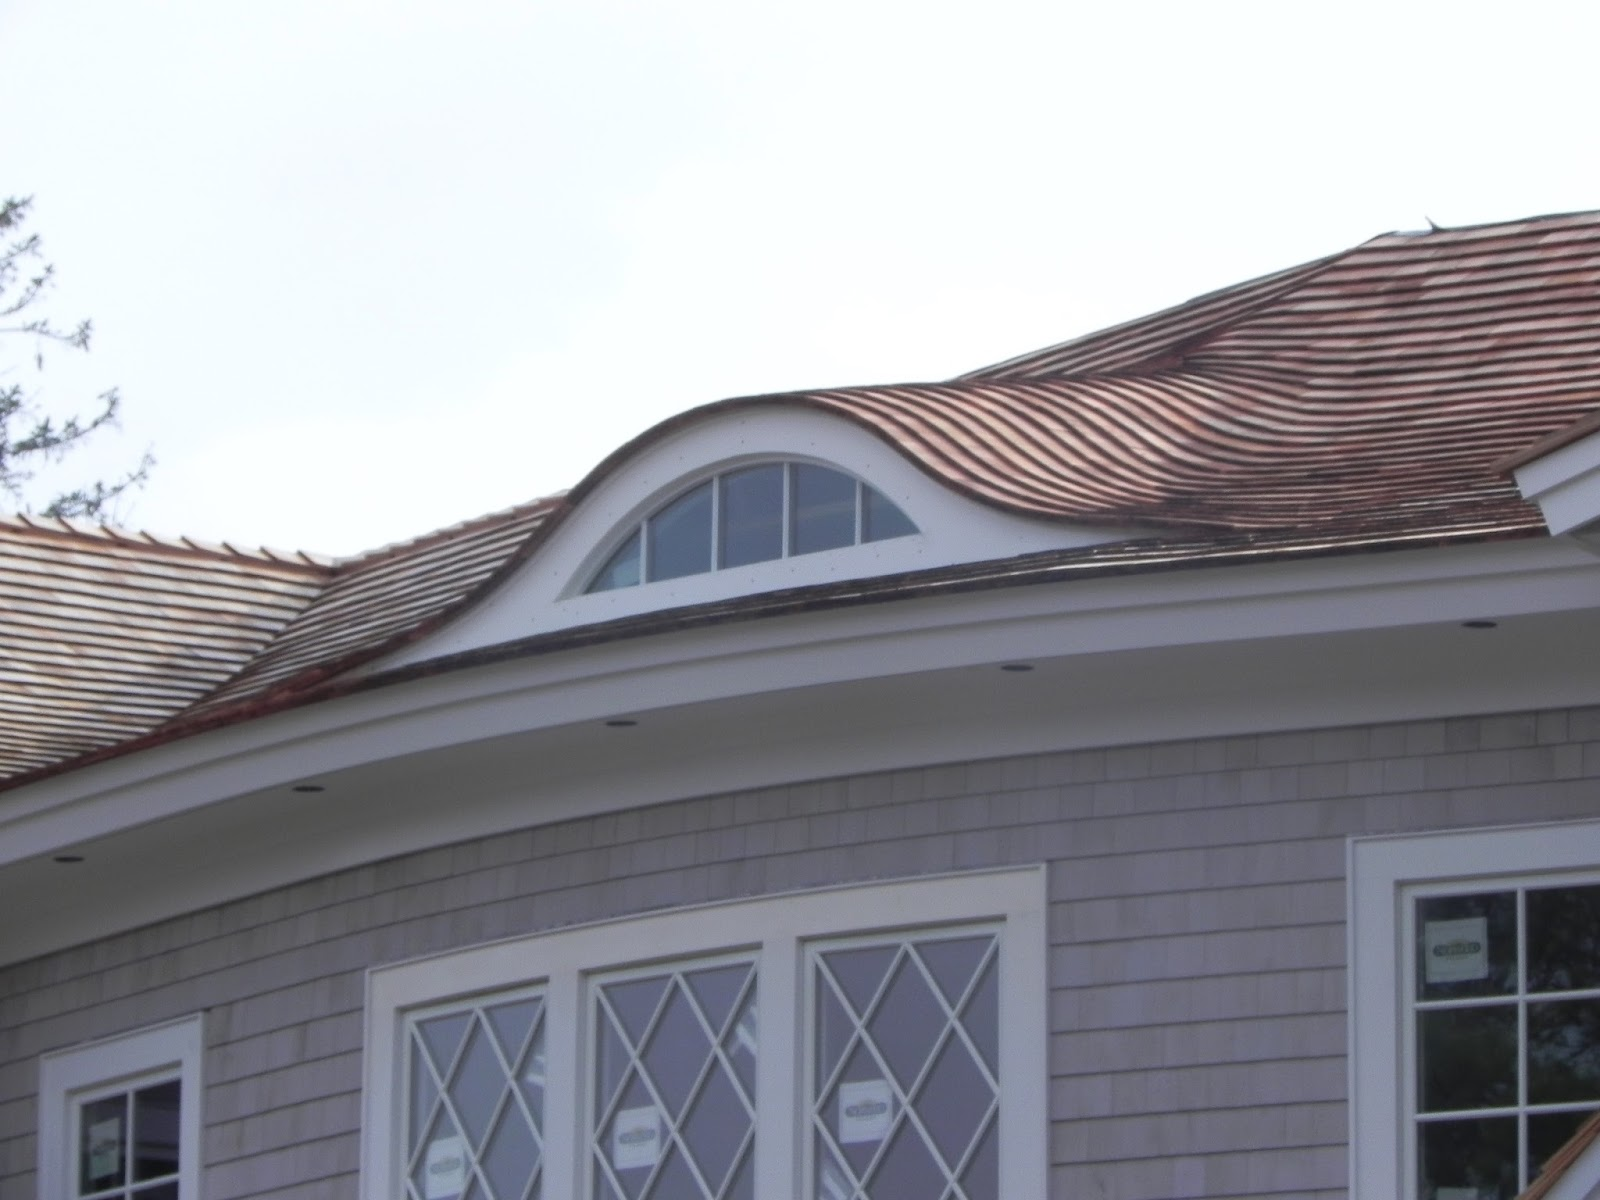 Eyebrow window dormer for Eyebrow dormer windows